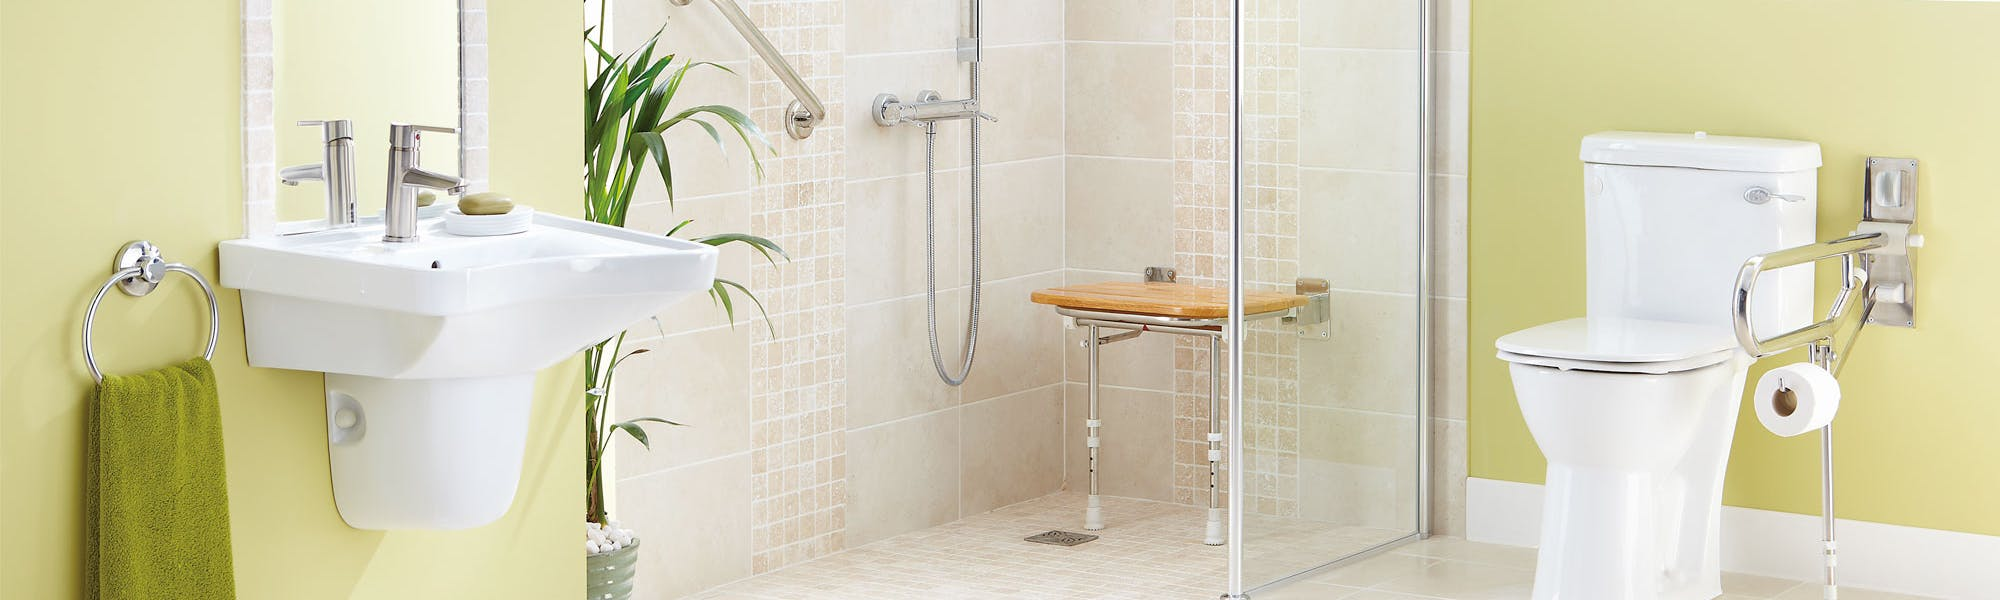 Accessible Bathroom Design | More Ability